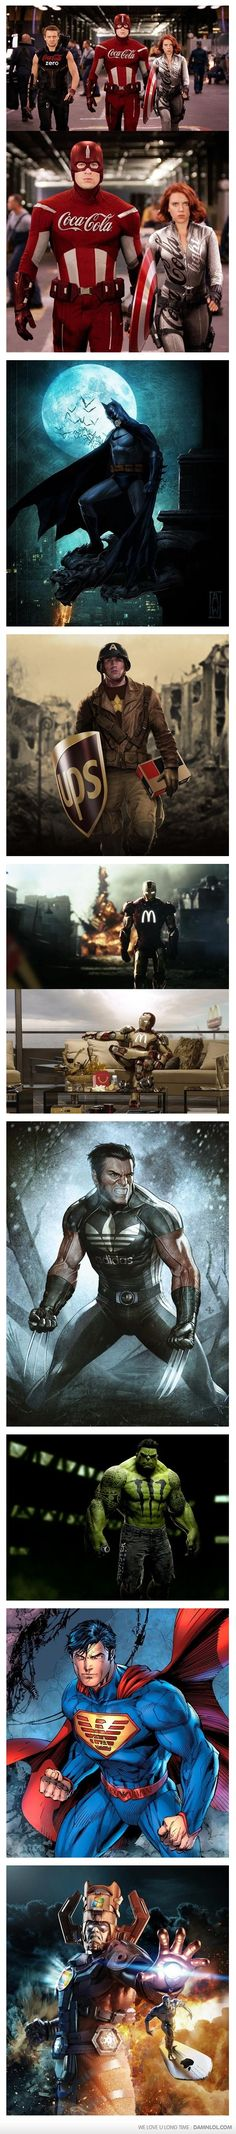 If Superheroes Had Sponsor - The Avengers, Batman, Superman, and Wolverine.